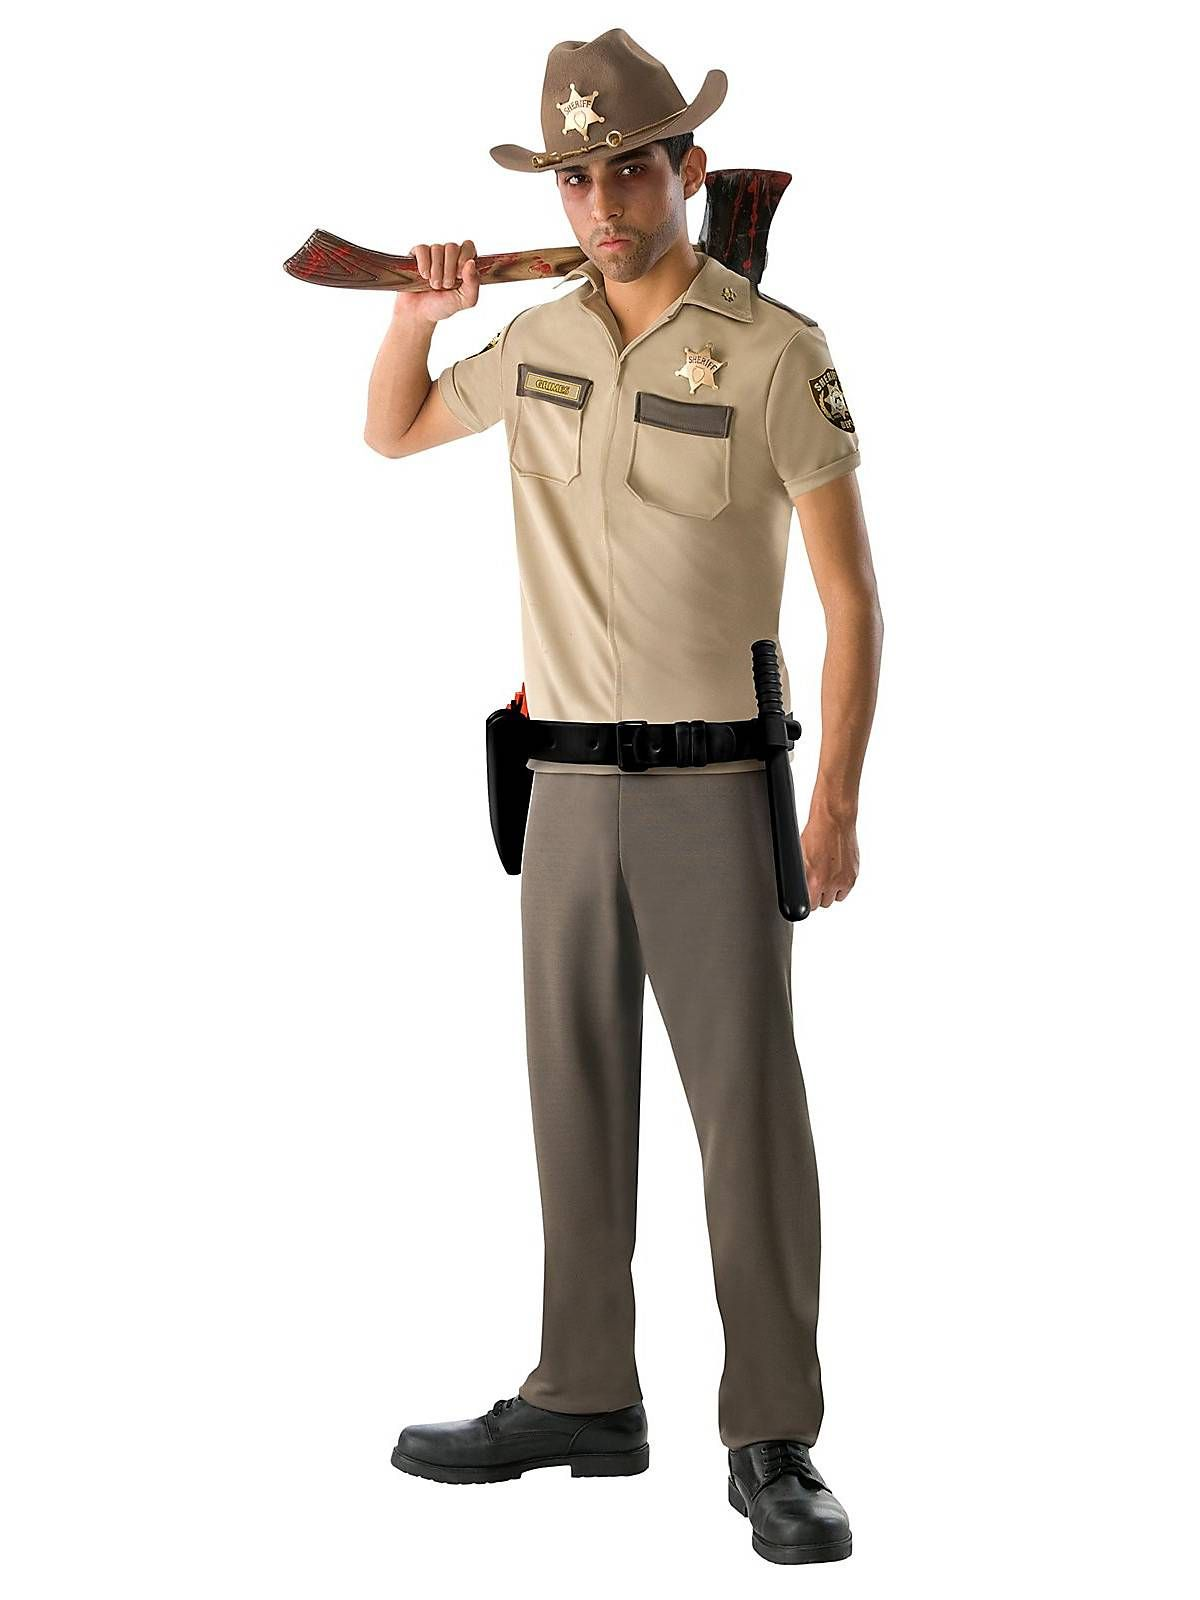 Rick Grimes Costume | Teen The Walking Dead Costumes - CHECK OUT our Top 10 Halloween Costumes for 2014: http://www.kickshawinc.com/top-10-halloween-costumes-2014/